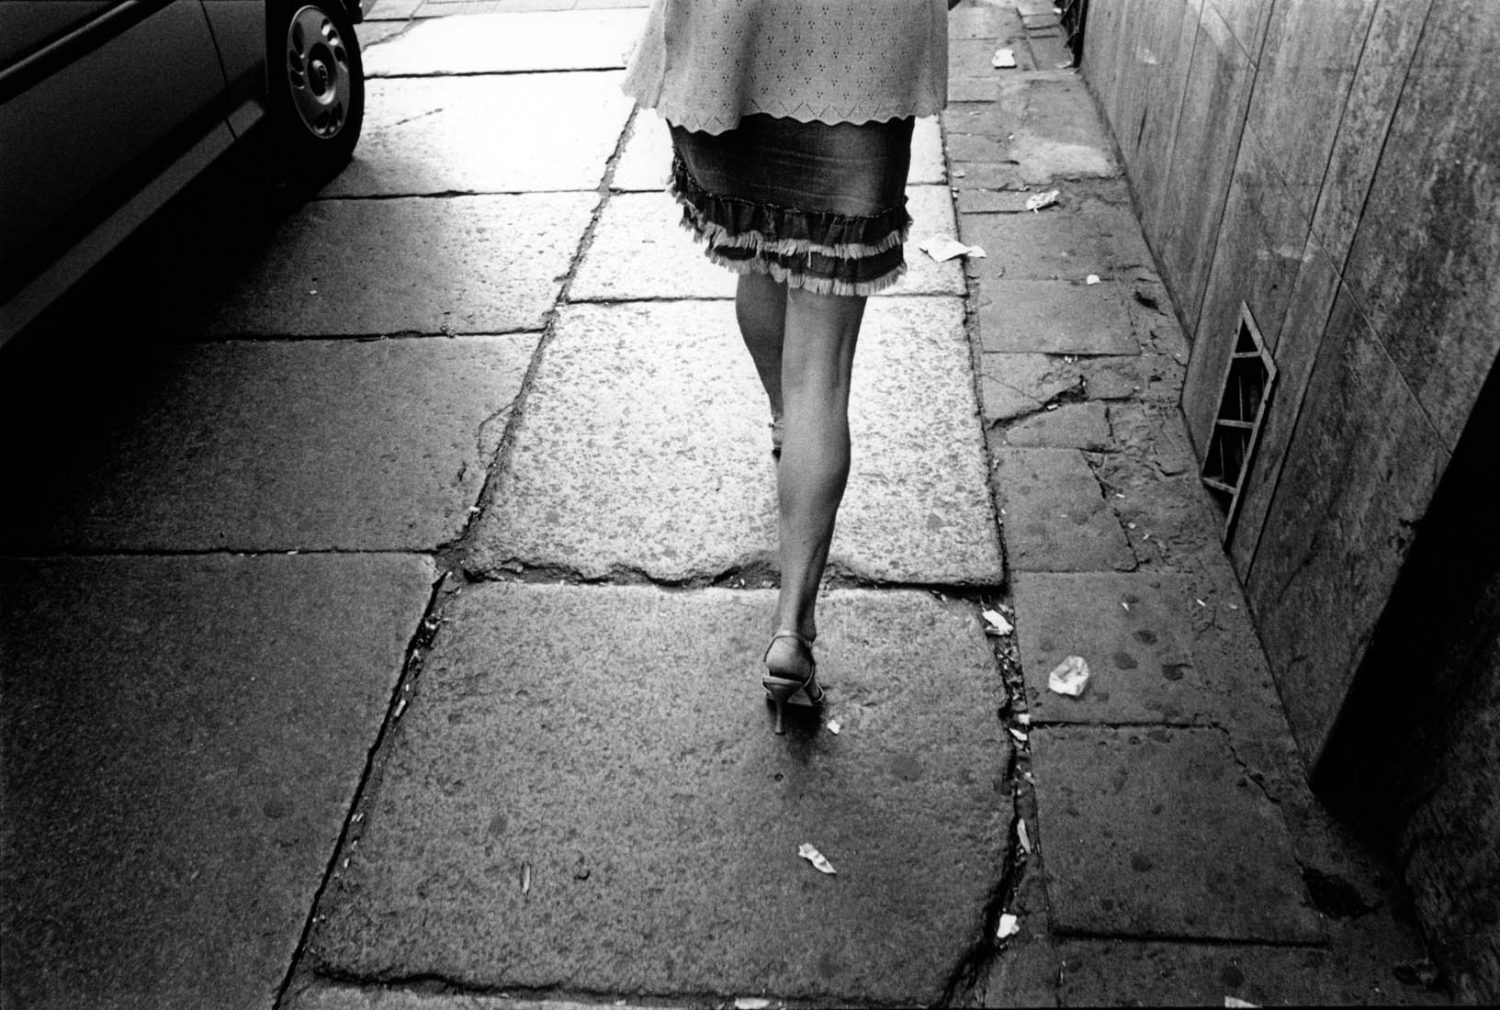 Polen, Scszecin, 27-07-2004 Beautiful en elegant woman legs on high heels in the streets of Scszecin Poland. PHOTO AND COPYRIGHT ROGER CREMERS